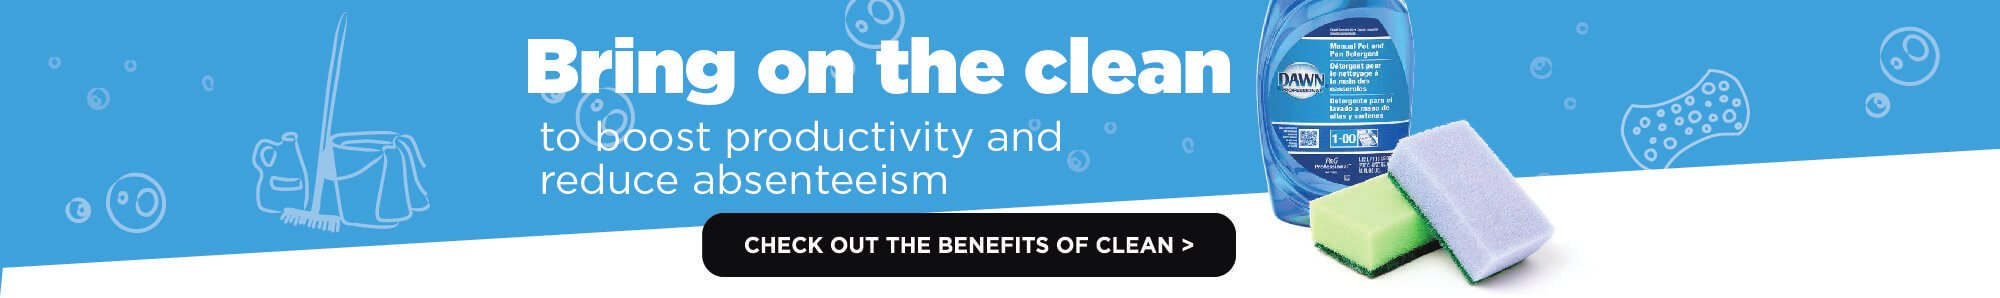 Bring on the clean to boost productivity and reduce absenteeism at www.OfficeZilla.com!